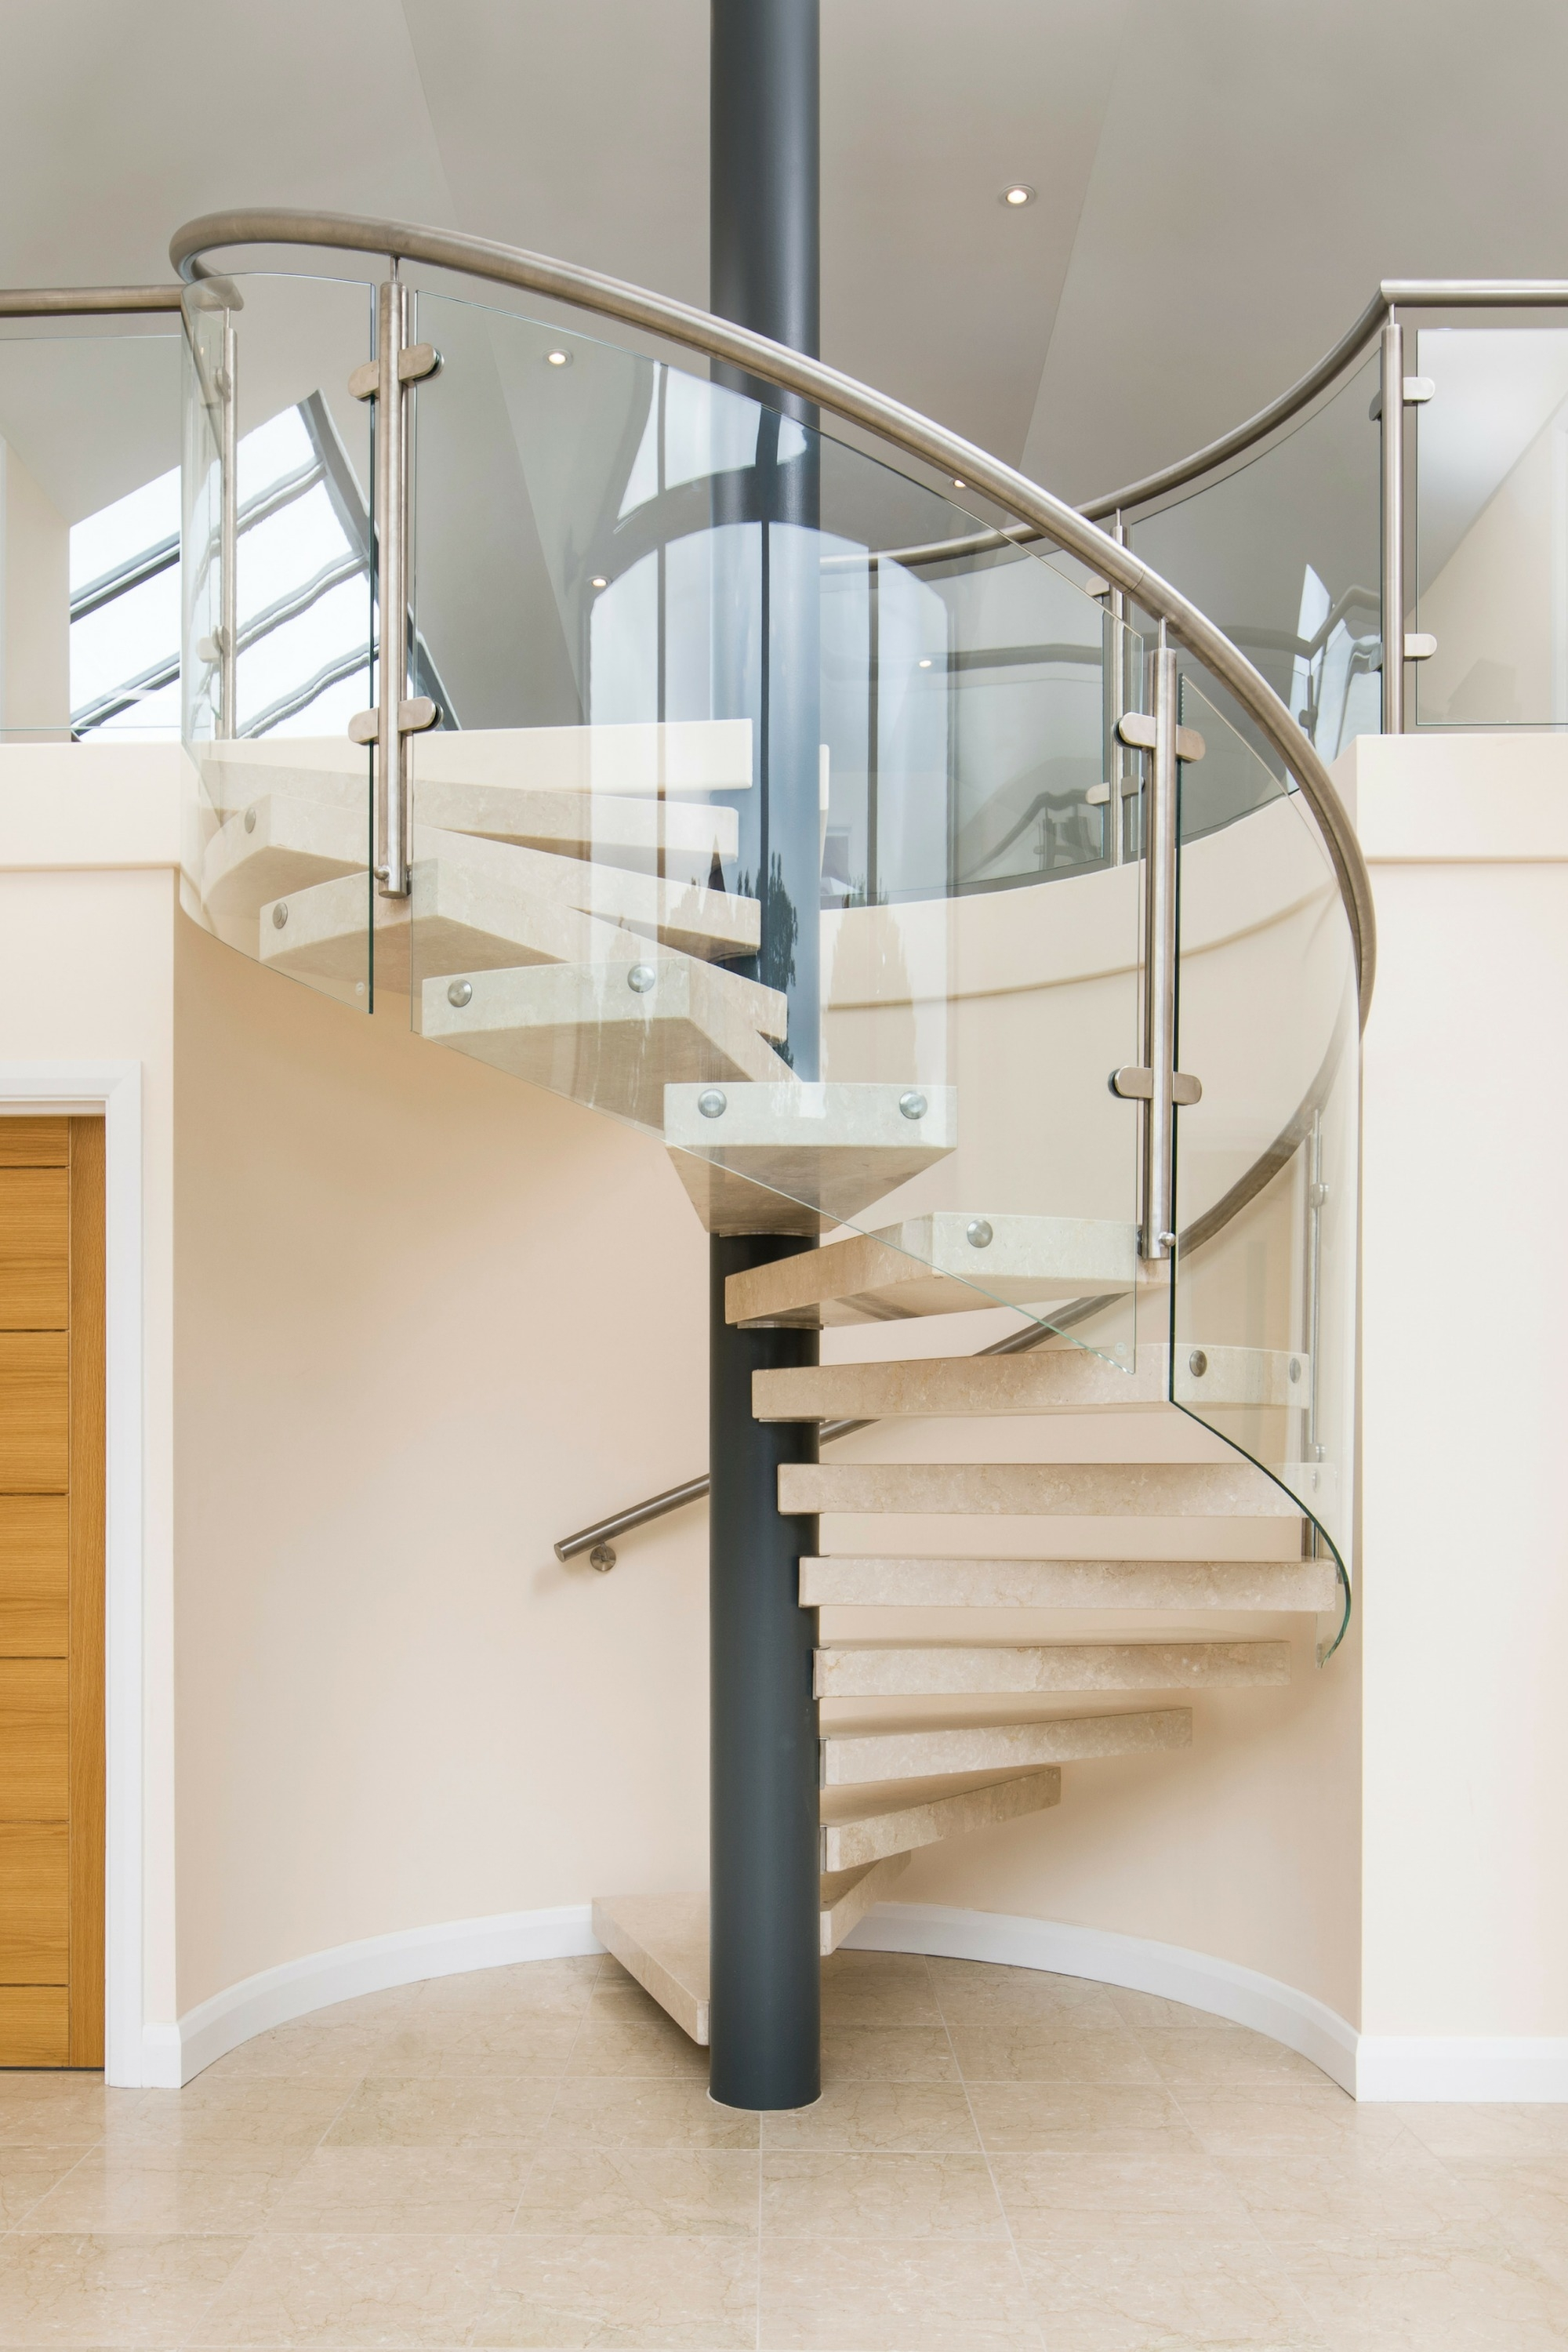 Spiral Staircases For Sale Uk Made To Measure | Circular Stairs For Sale | Shop | Glass | Wooden | Modern | Wrought Iron